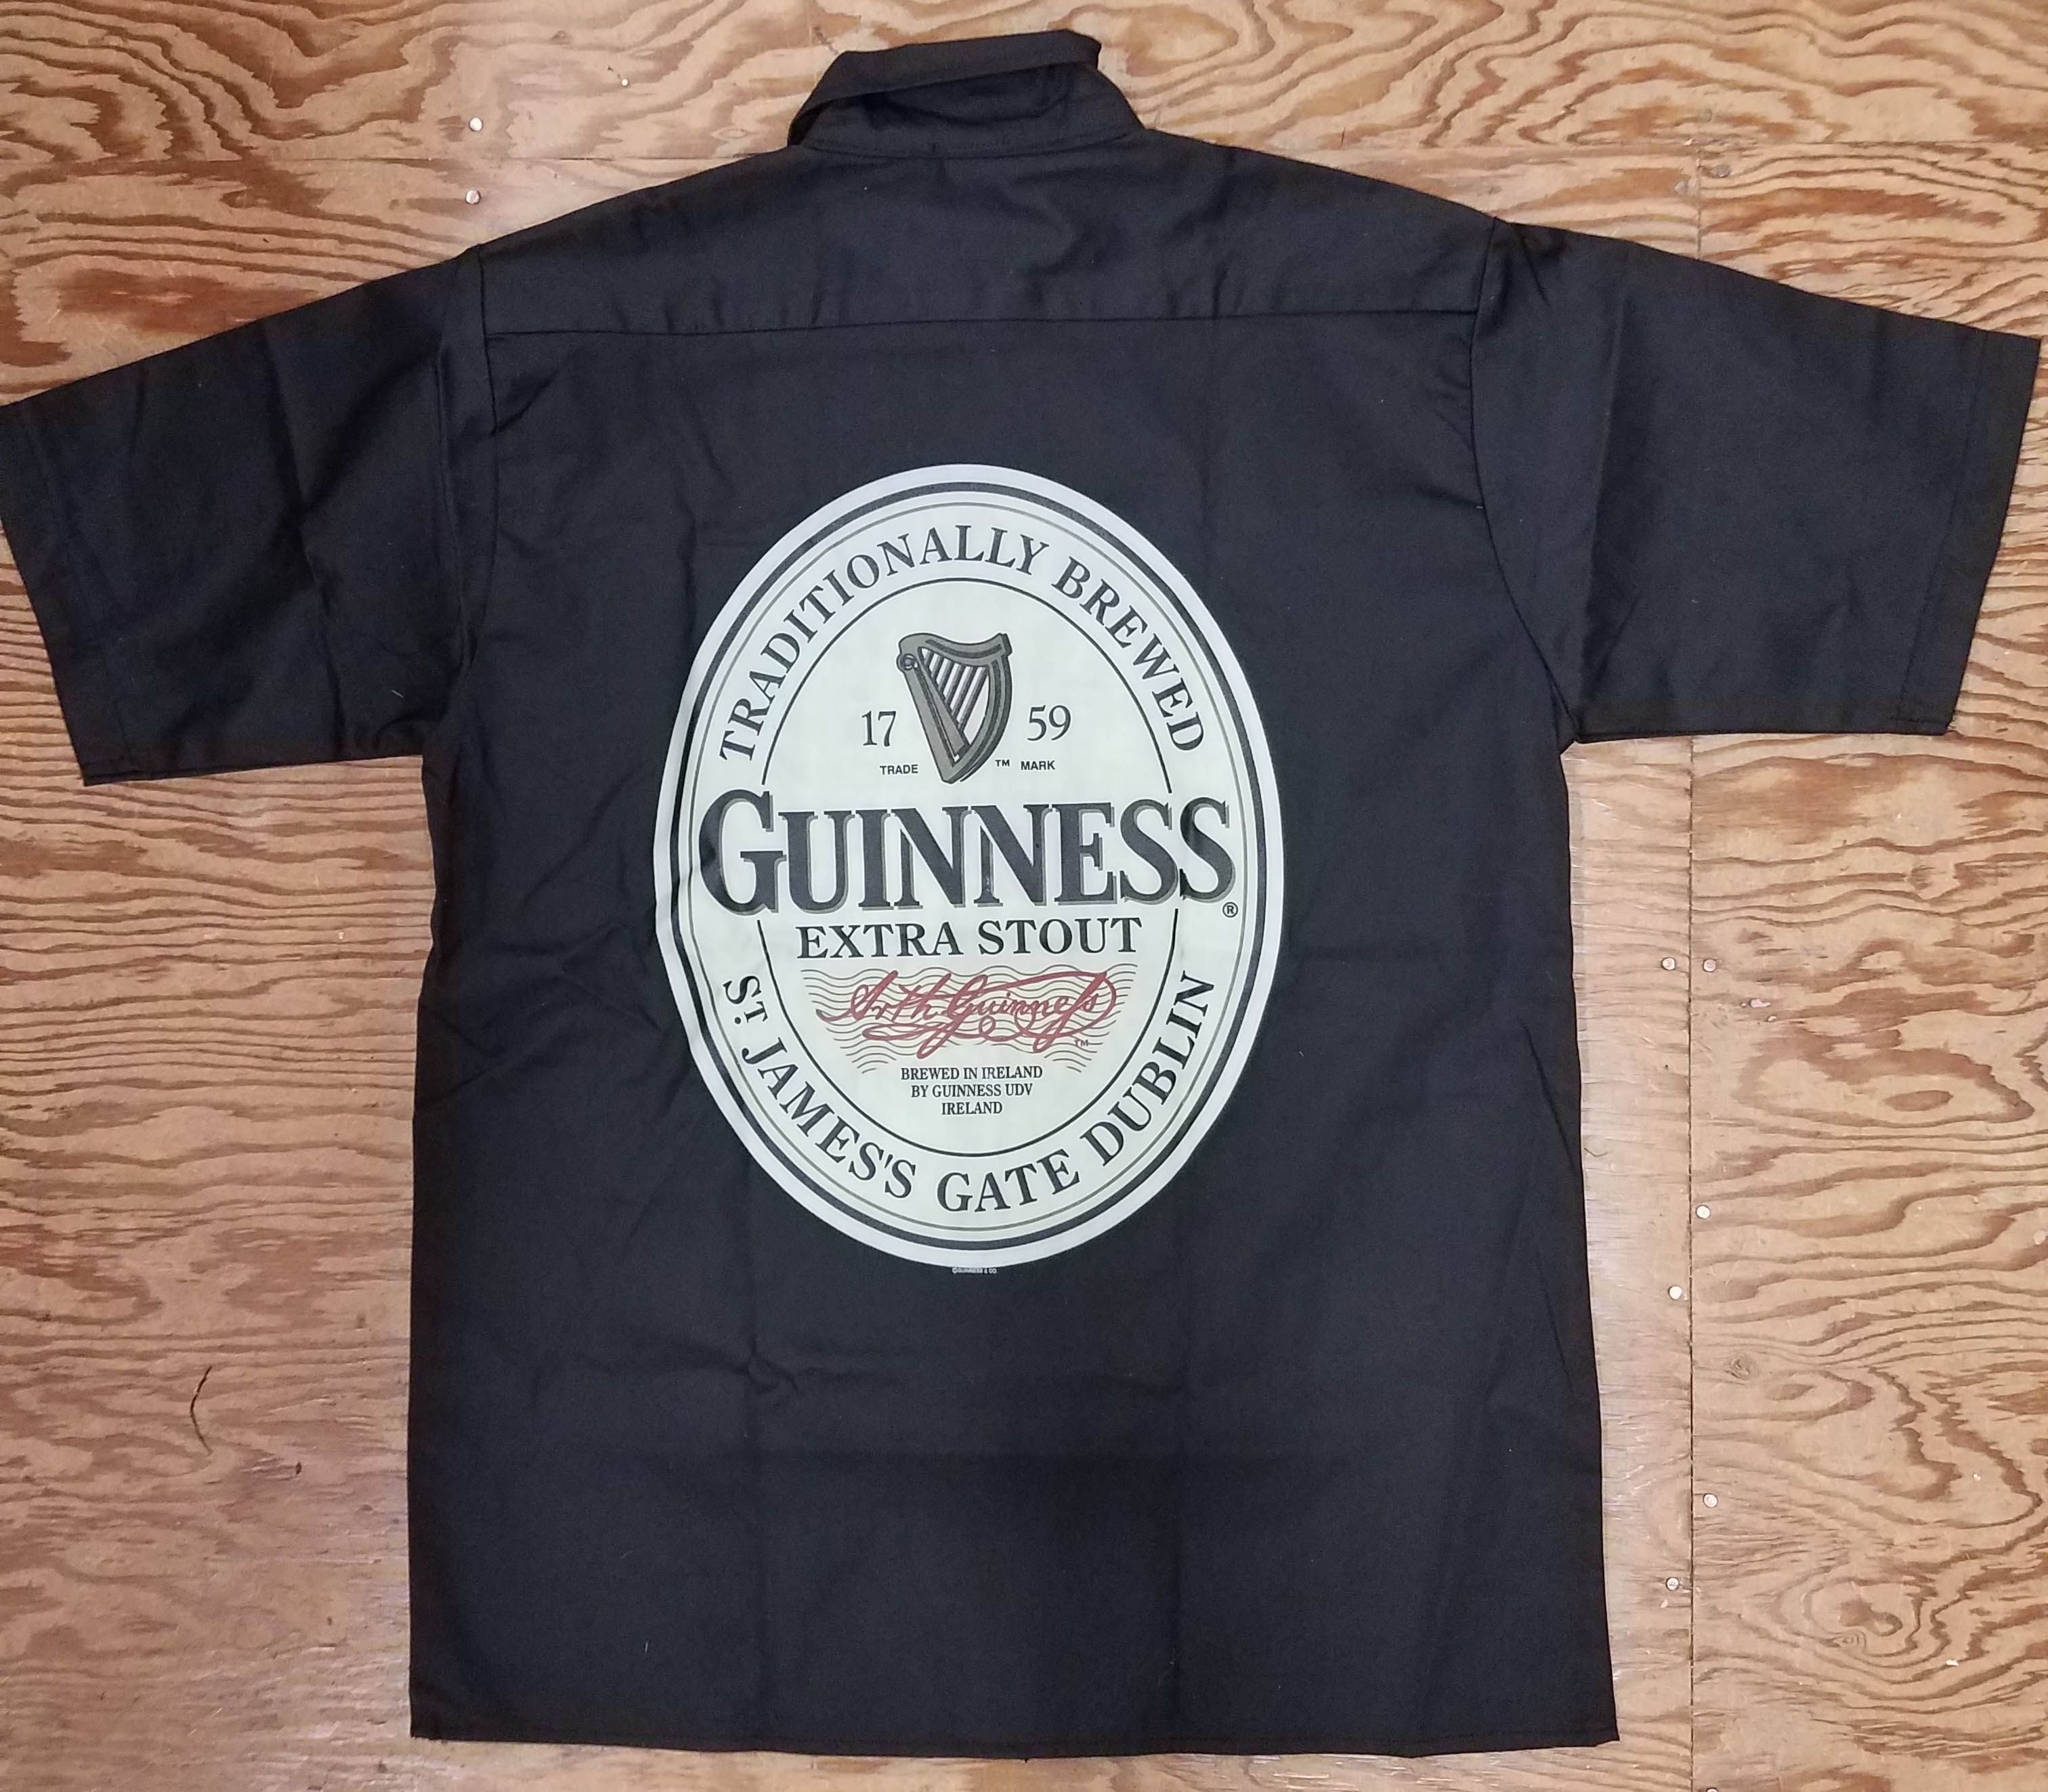 Guinness- Logo Embroidered on front, Label on back on a black button down work shirt (Sale price!)